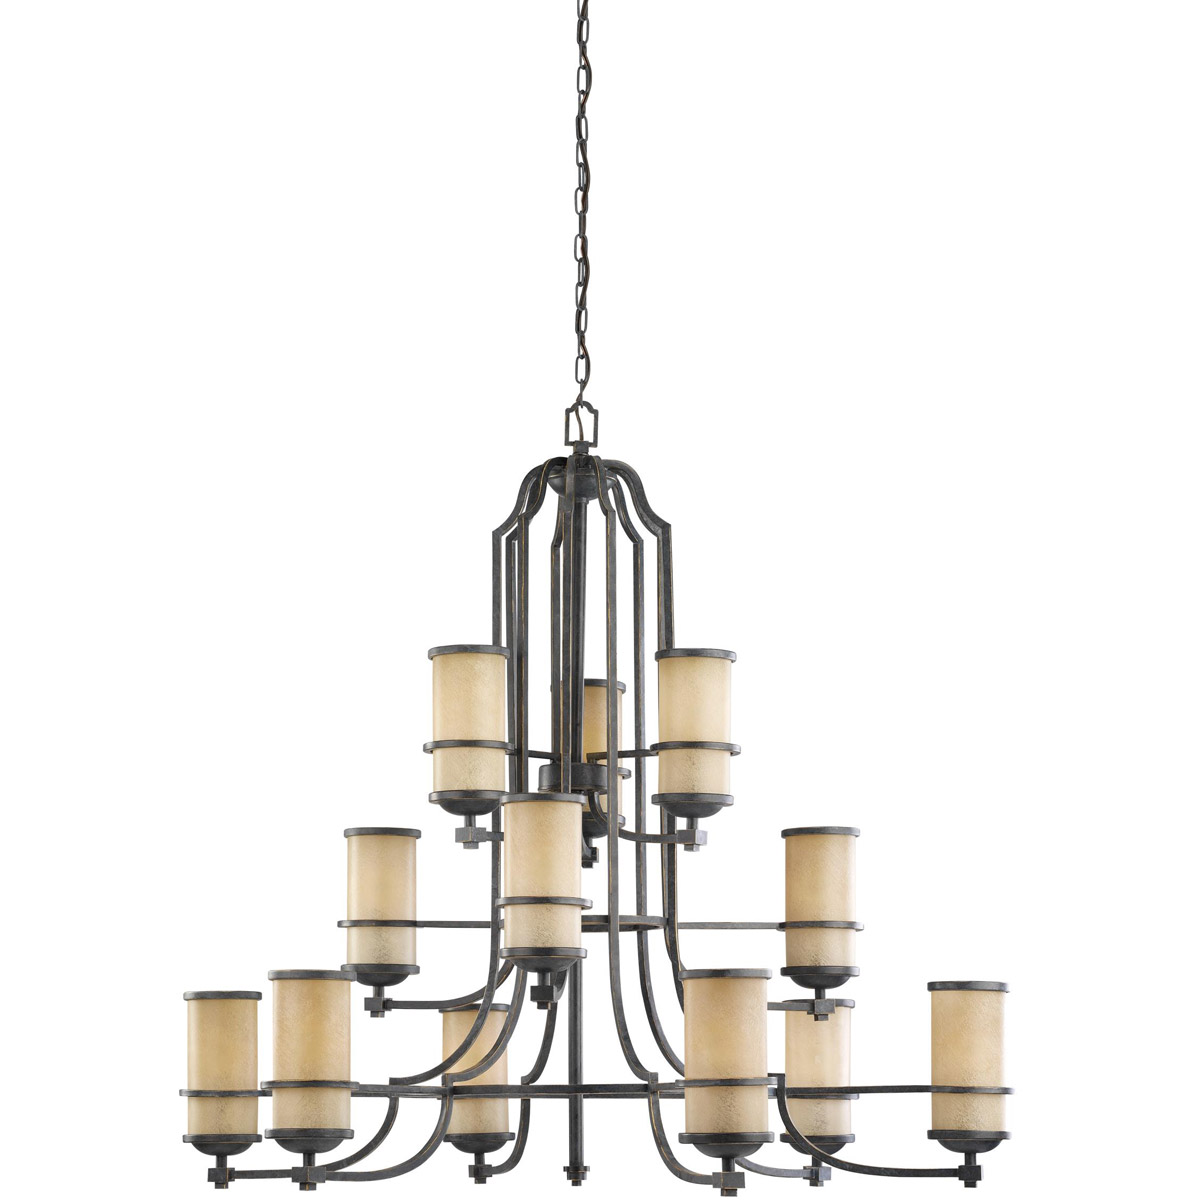 Sea Gull Lighting Roslyn 12 Light Chandelier in Flemish Bronze 31523-845